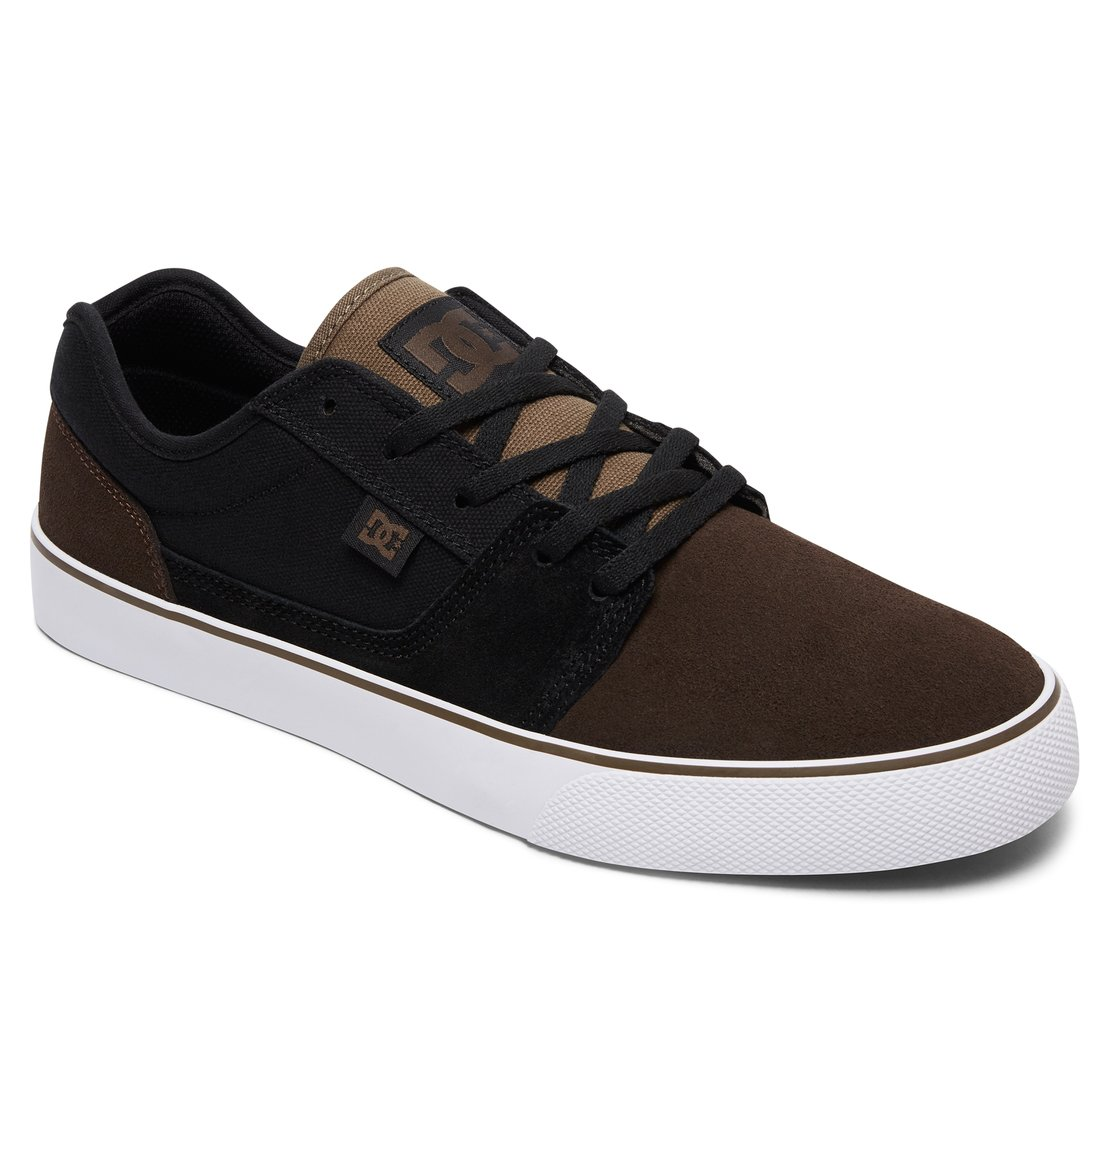 DC-Shoes-Tonik-Baskets-pour-Homme-302905 miniature 21